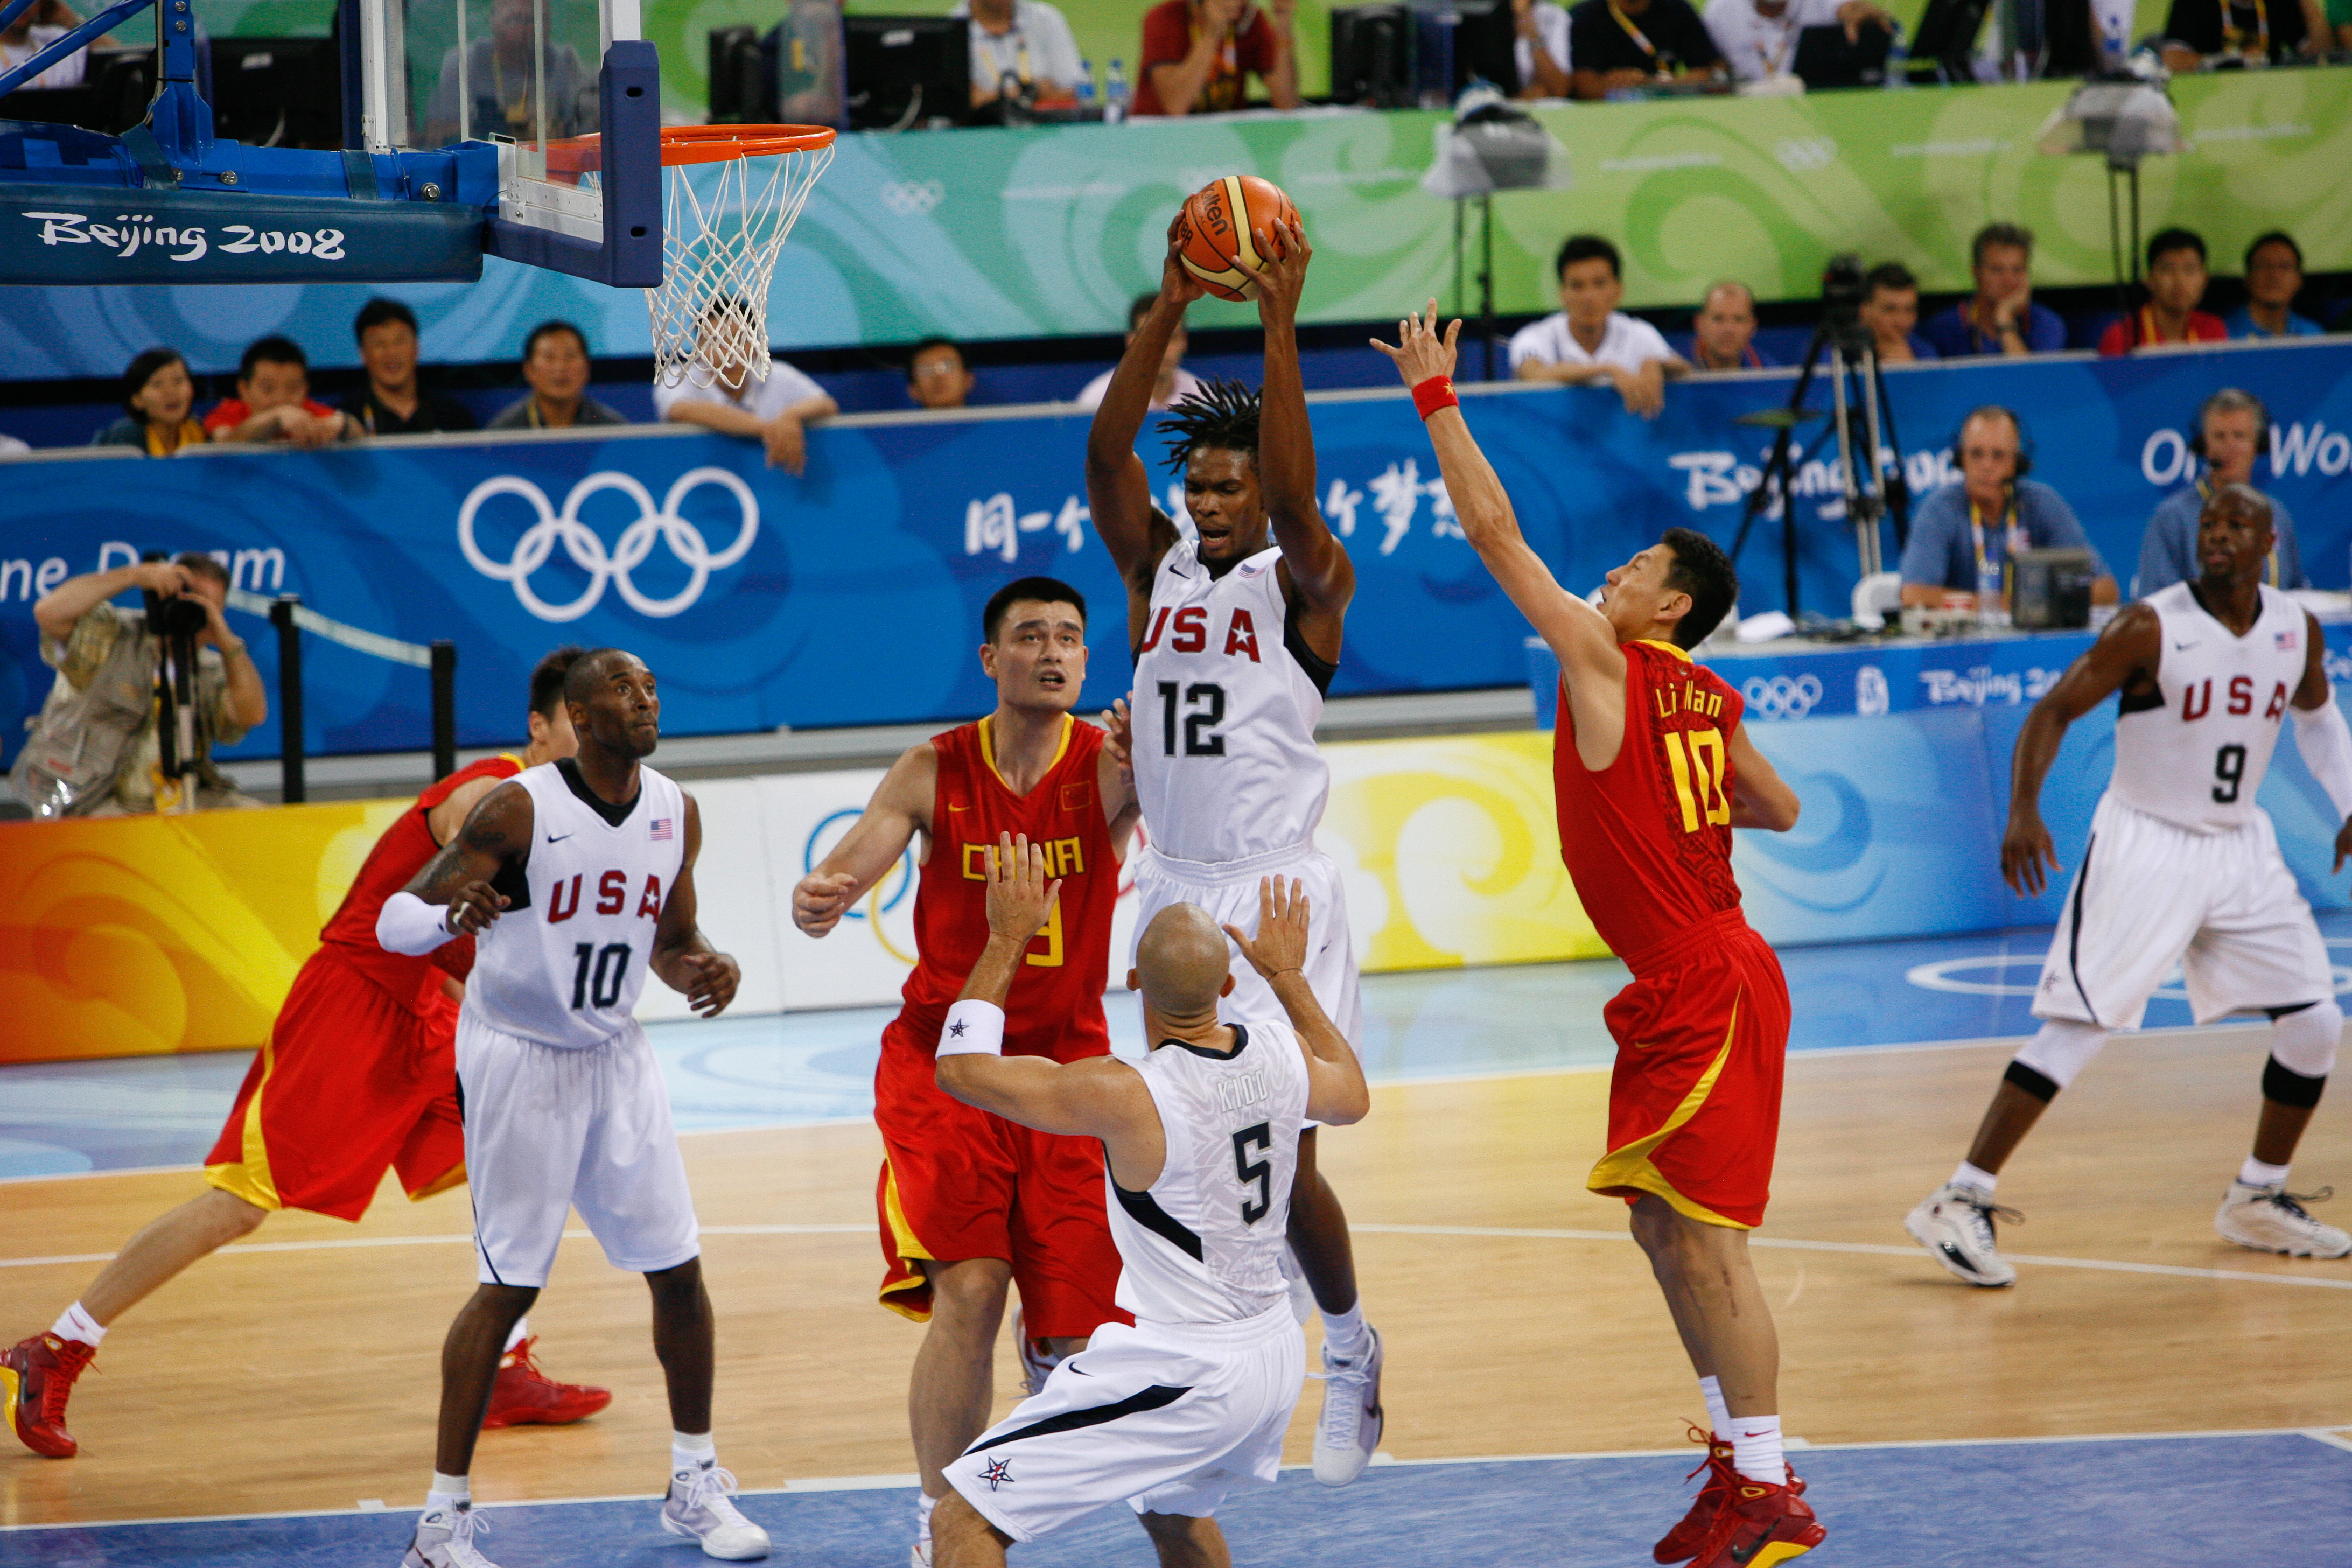 Sports of the Olympic Games